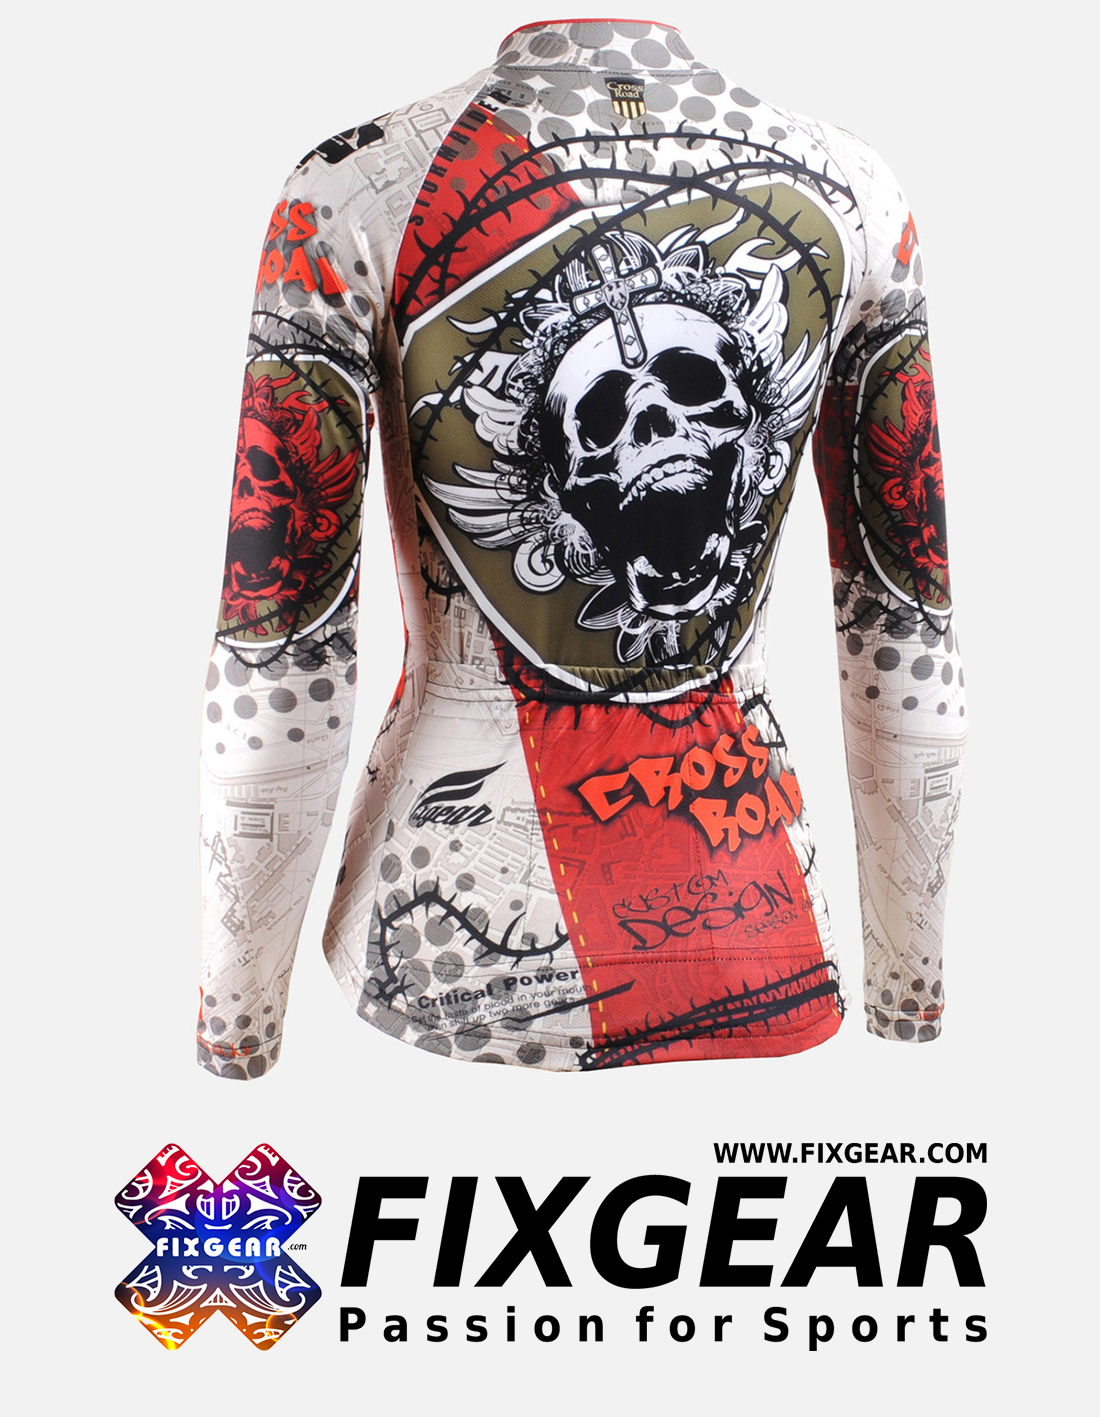 FIXGEAR CS-W501 Women's Long Sleeve Jersey